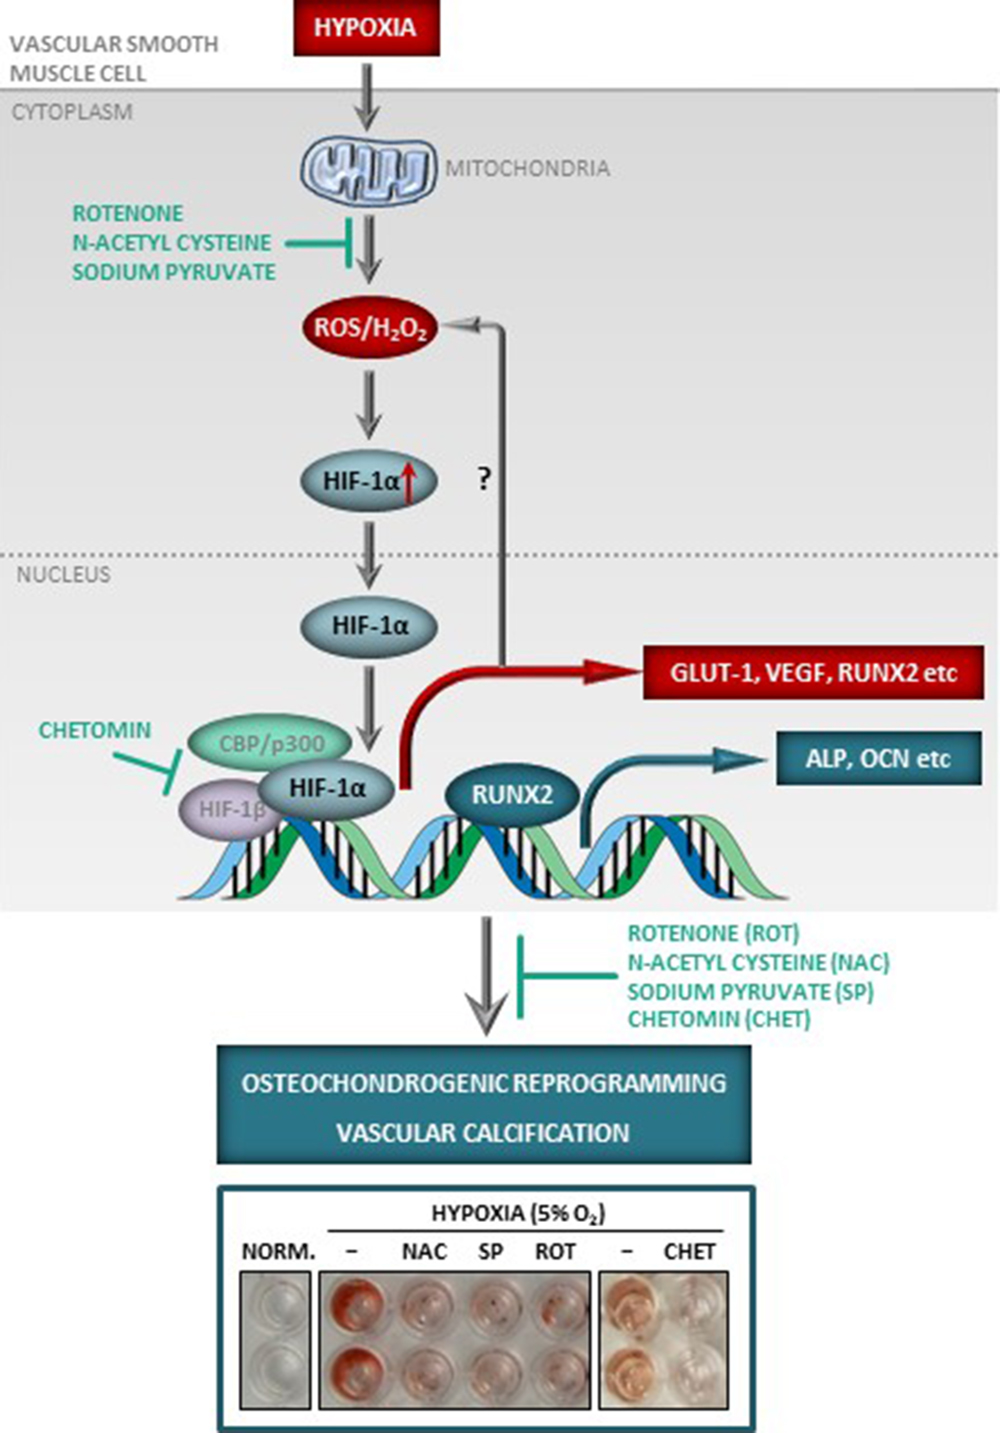 Hypoxia Triggers Osteochondrogenic Differentiation of Vascular